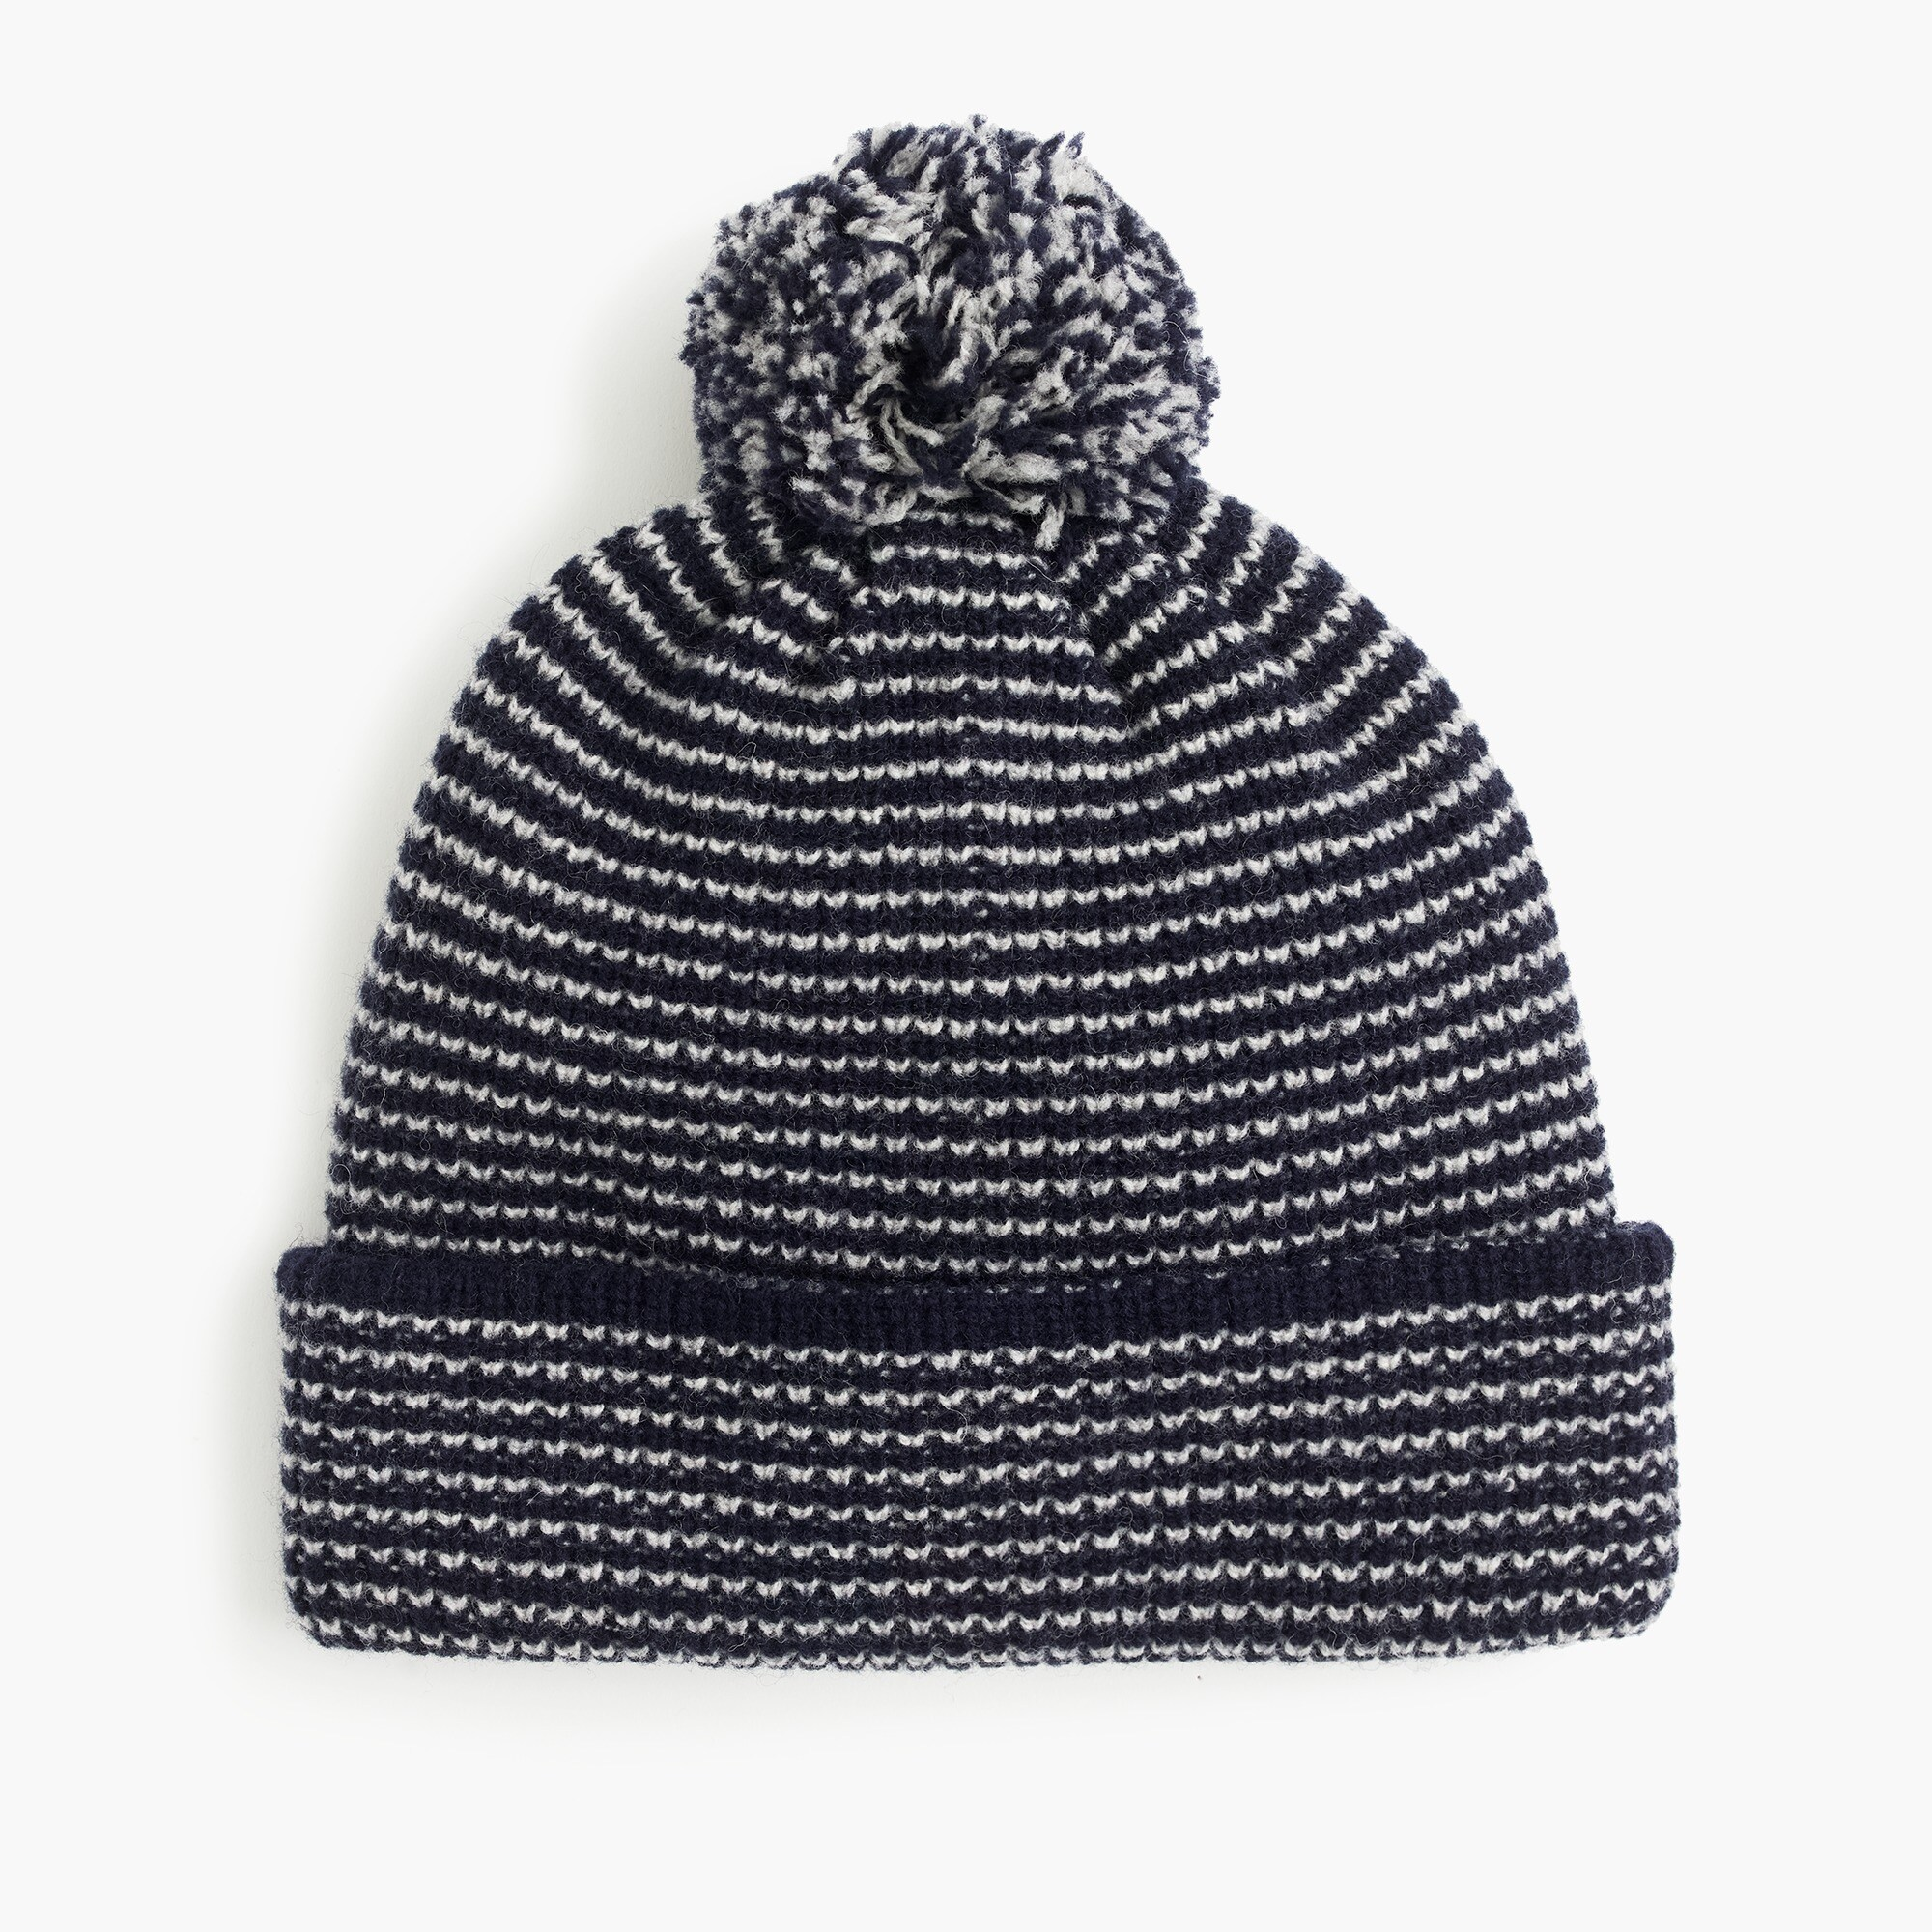 Lambswool beanie hat in thin stripe